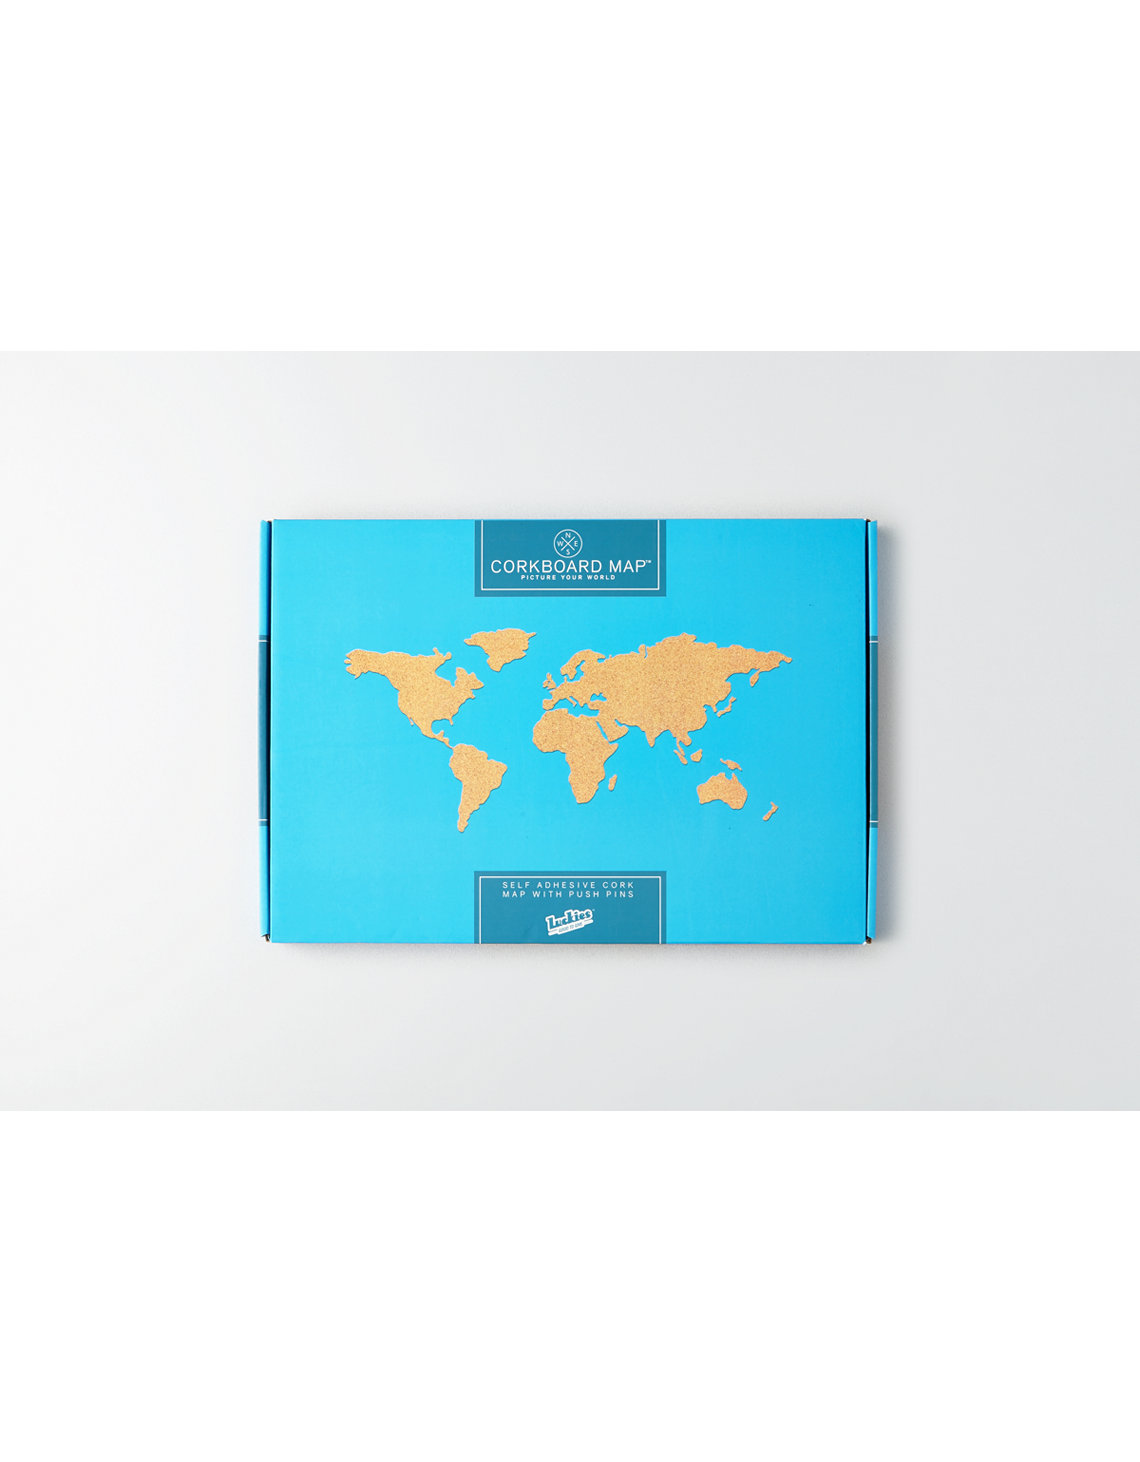 Corkboard map multi american eagle outfitters corkboard map placeholder image product image gumiabroncs Gallery